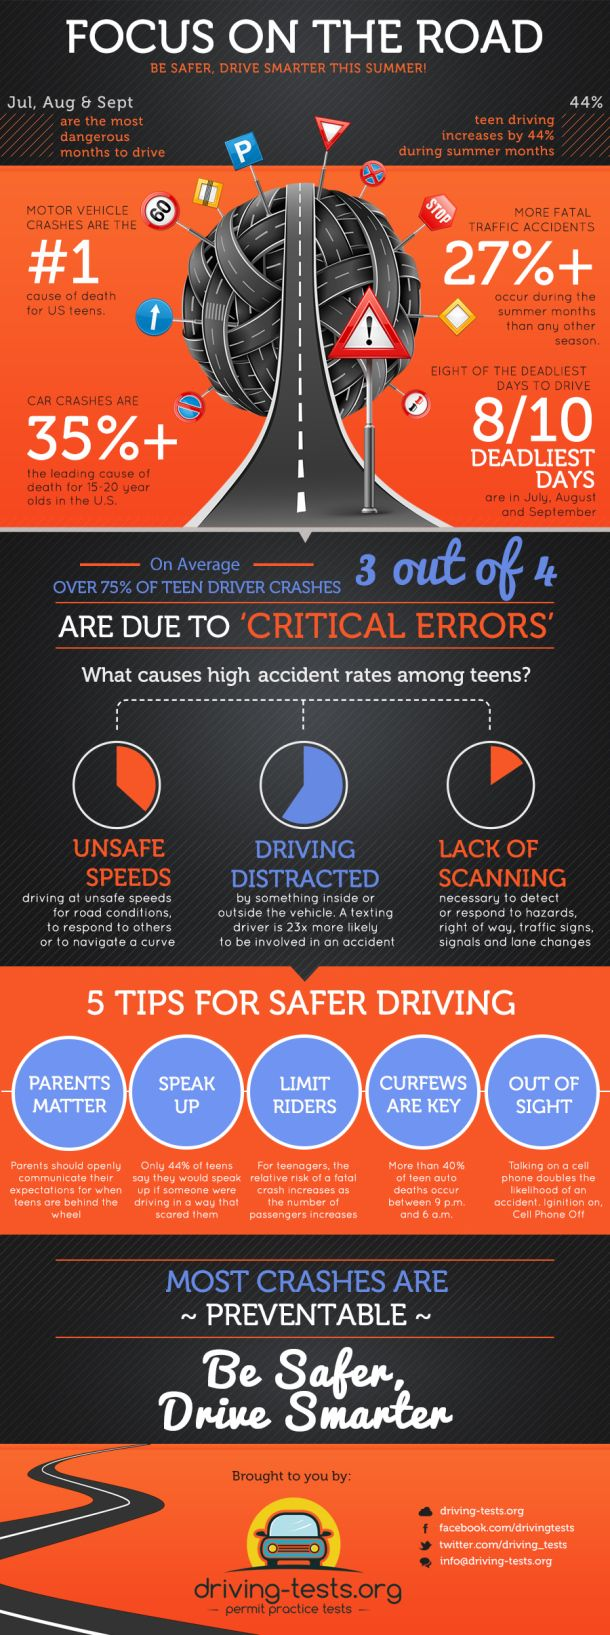 Focus On The Road[INFOGRAPHIC]